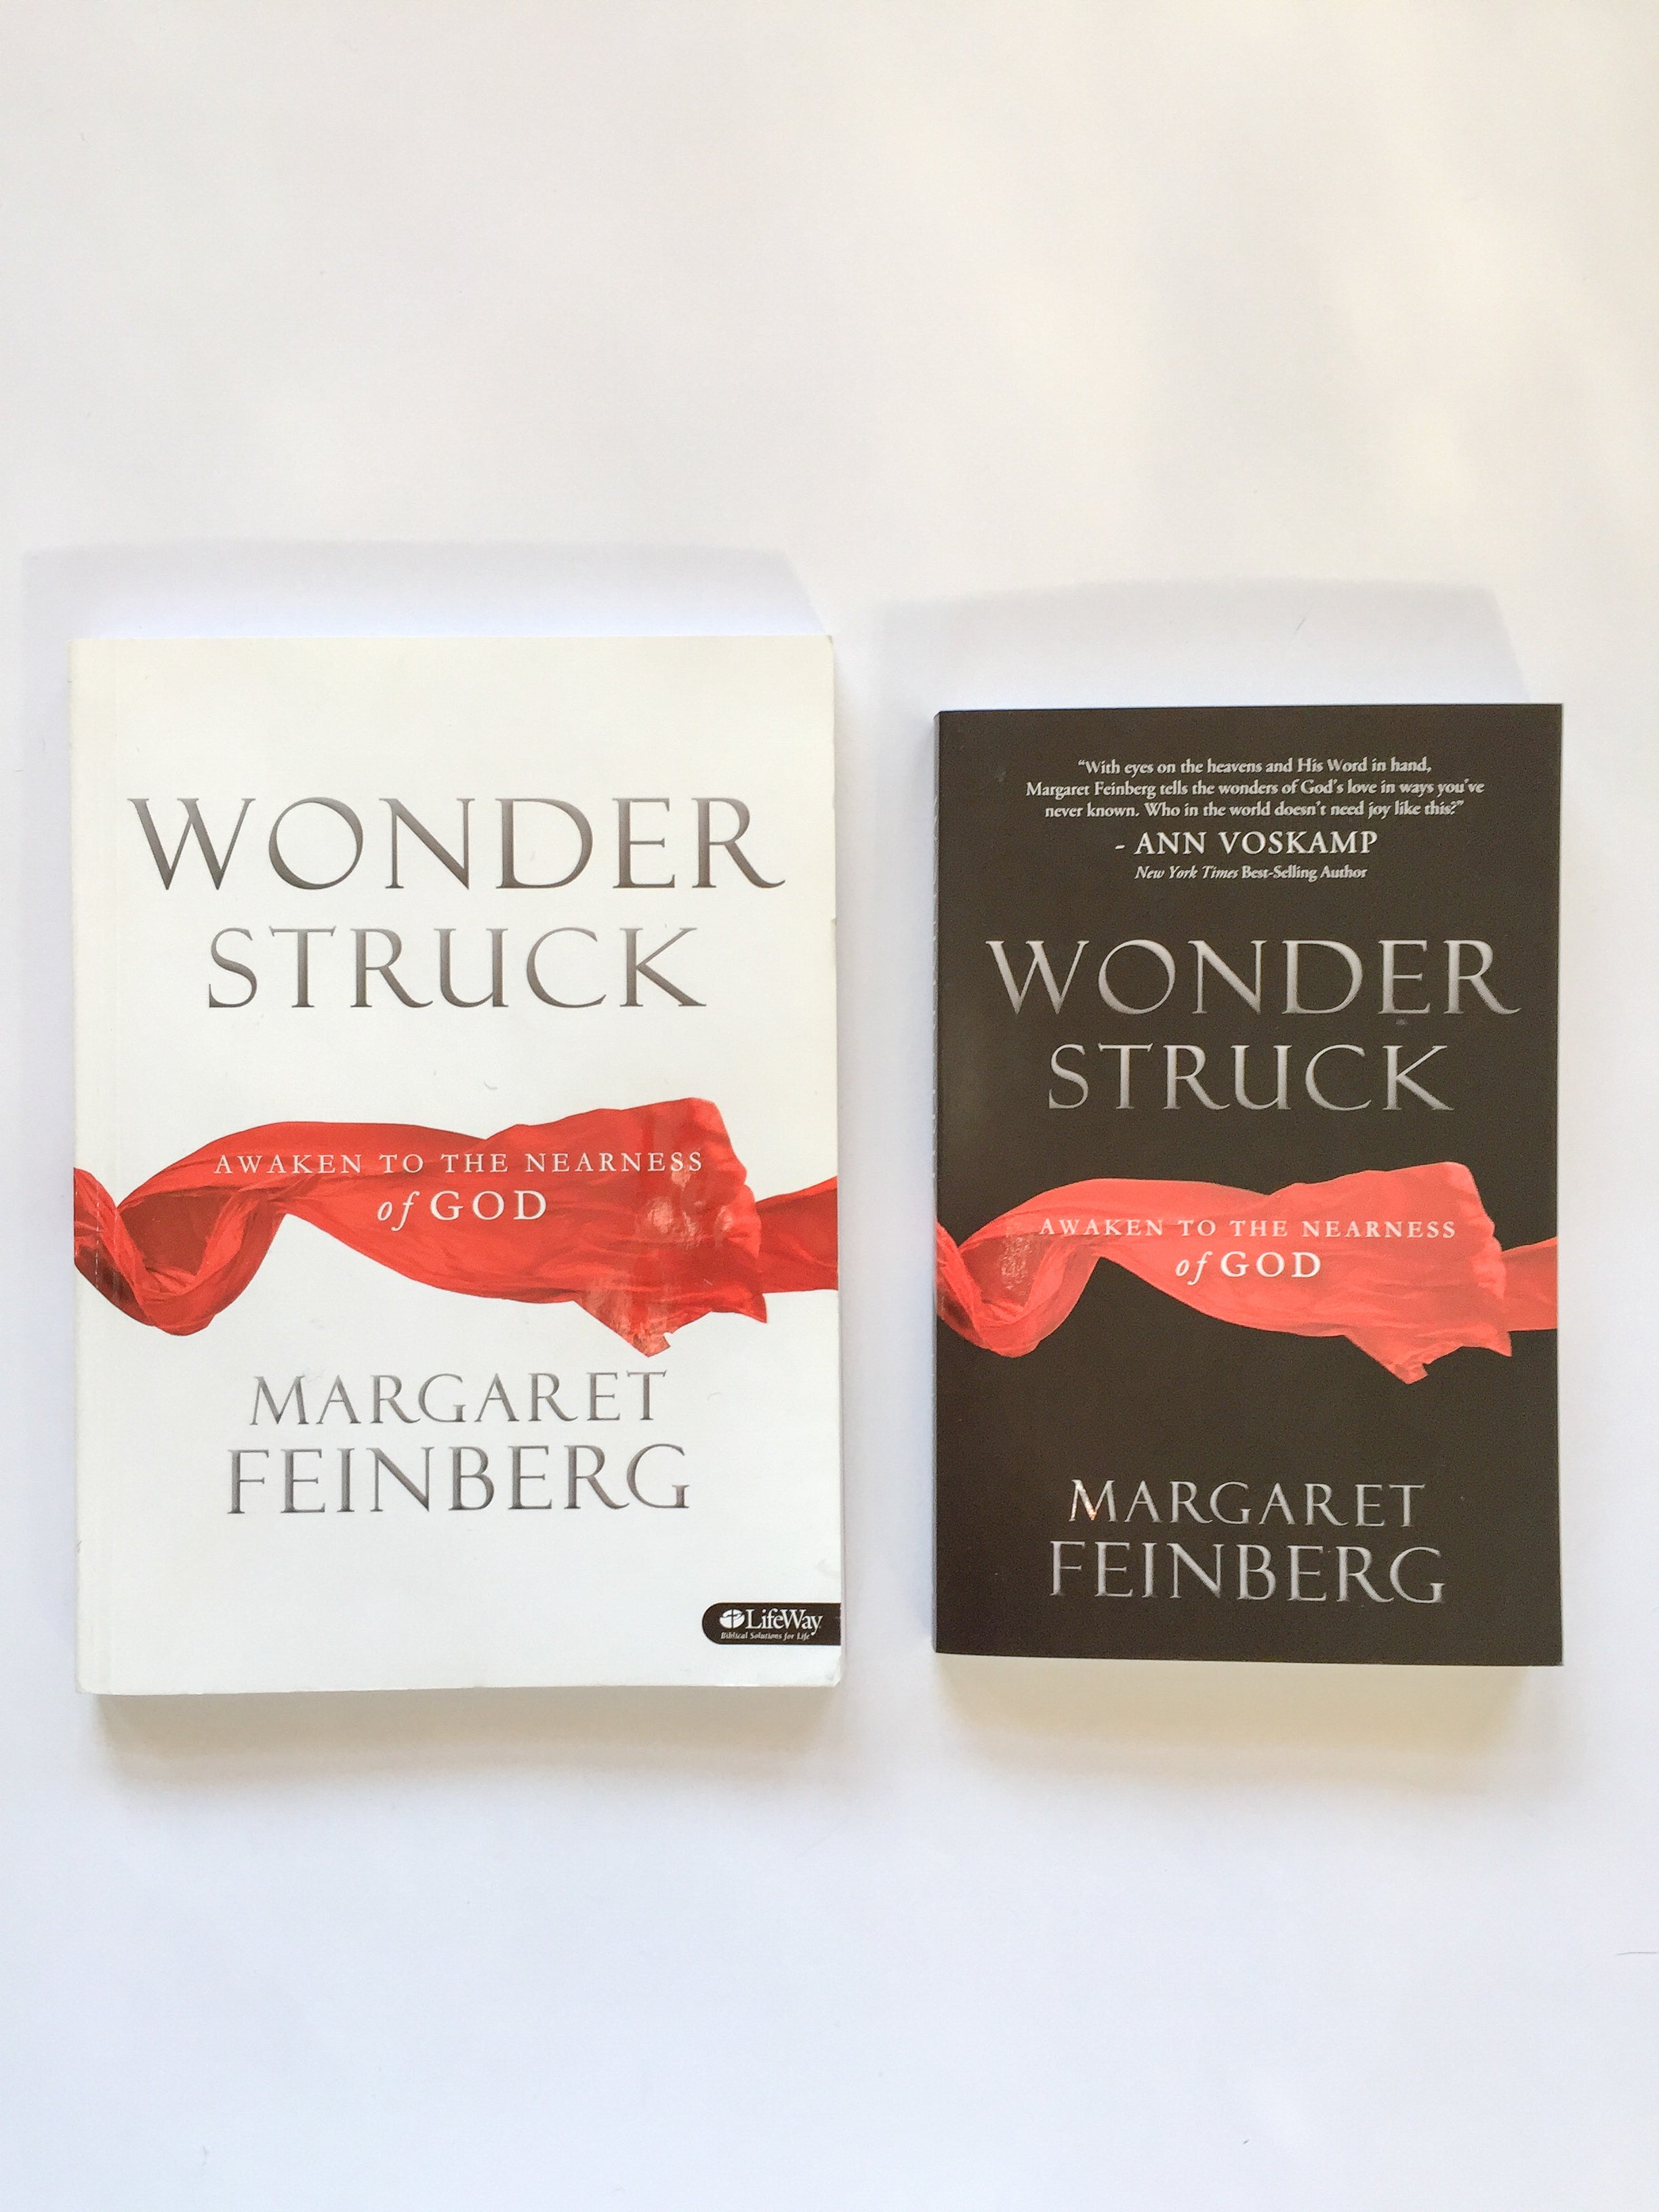 Wonderstruck Book & Workbook Combination